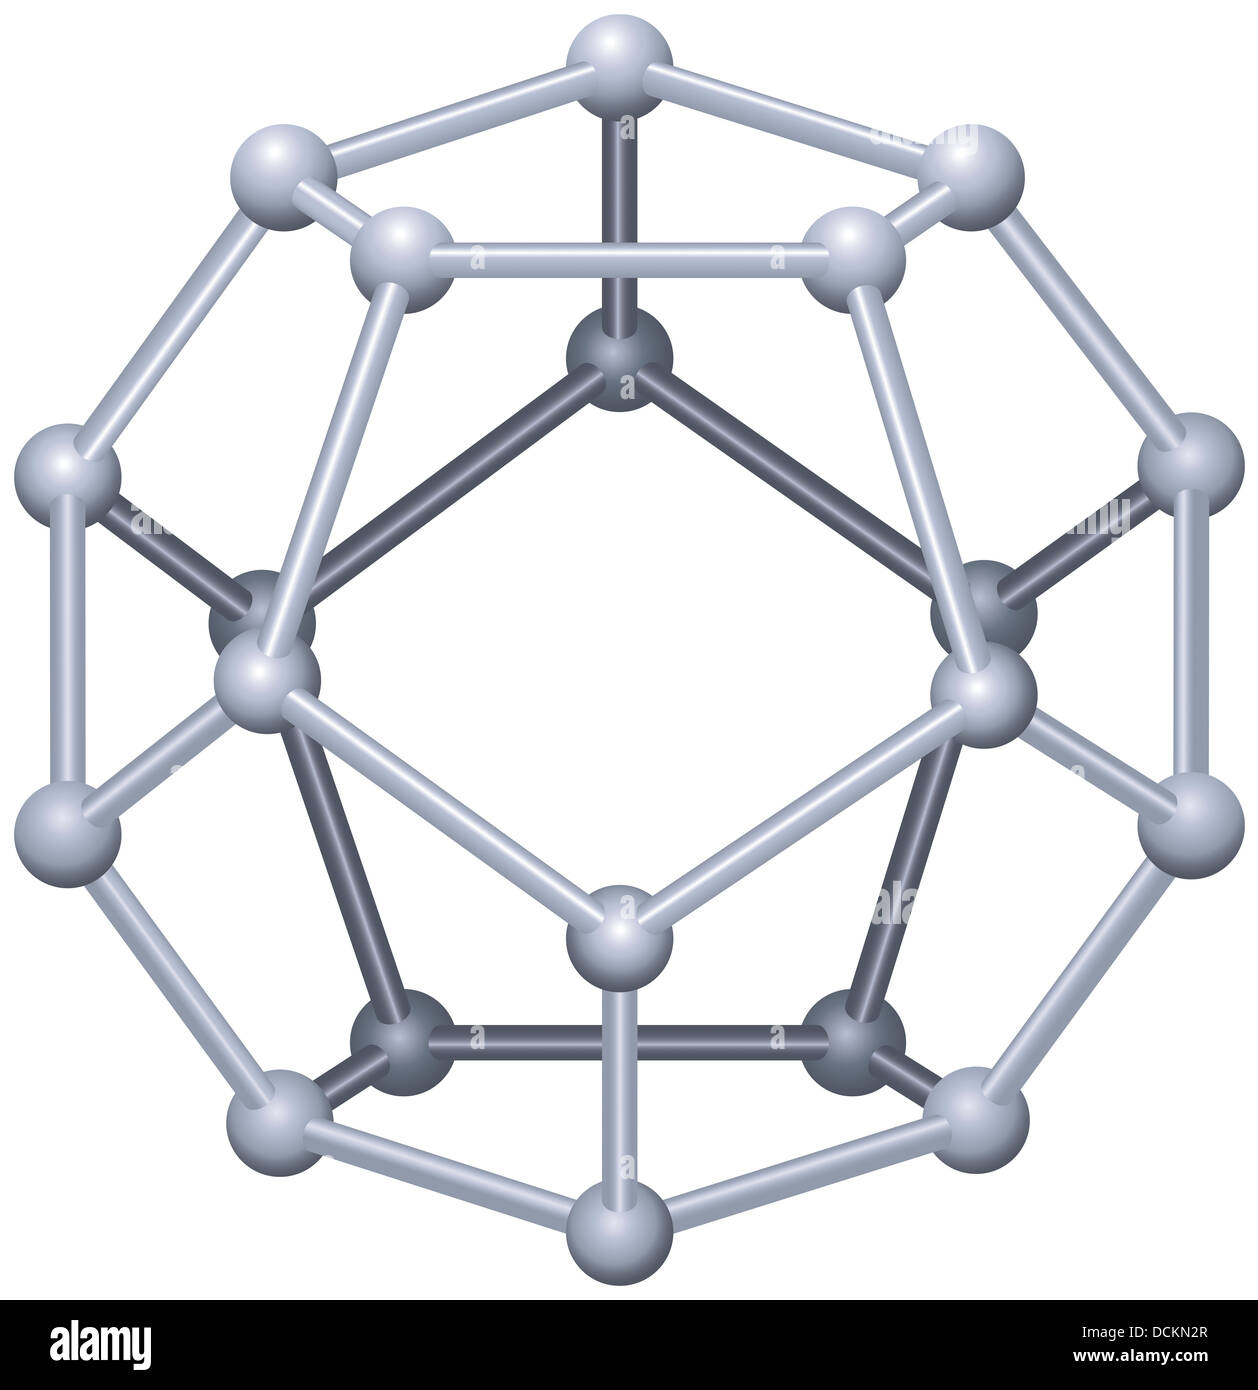 Dodecahedron - Platonic Solid Stock Photo: 59440607 - Alamy